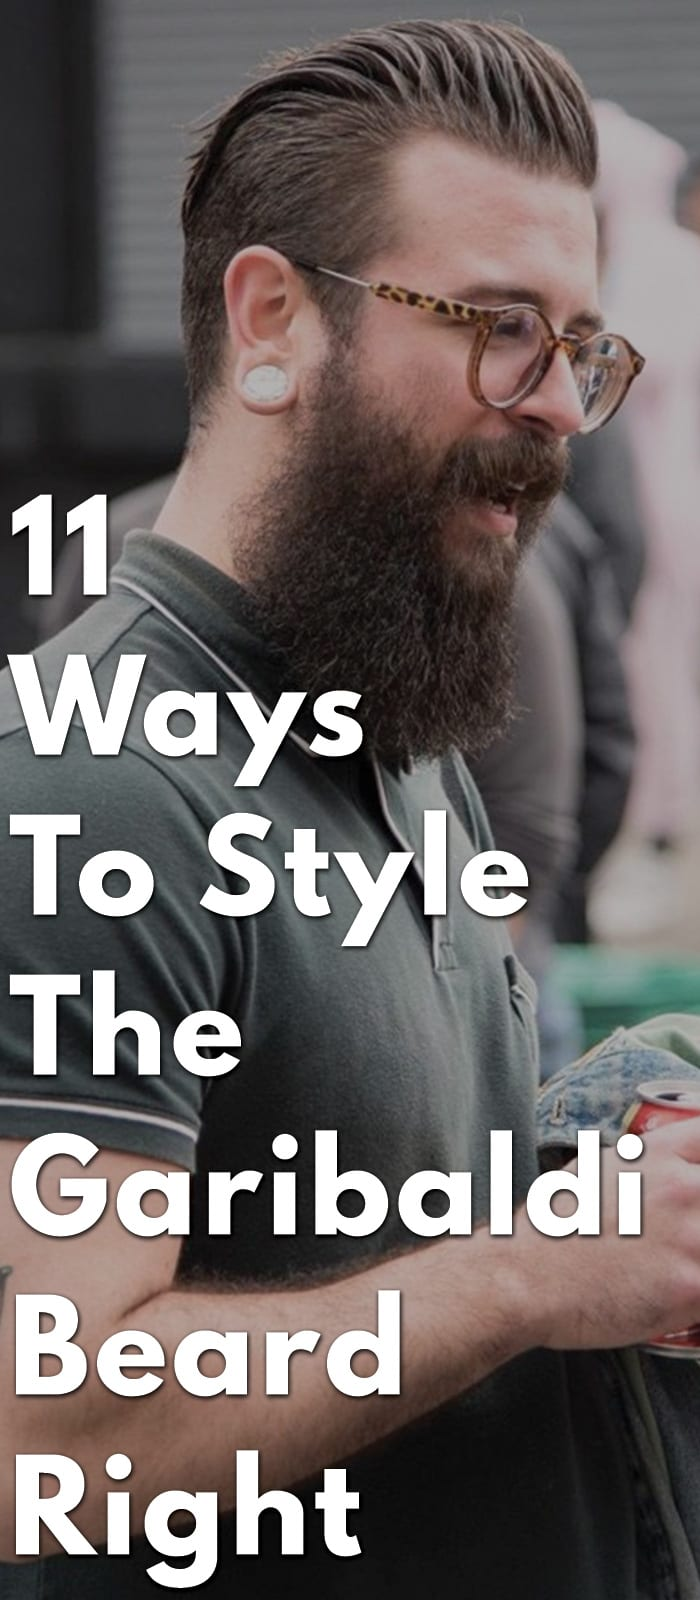 11-Ways-To-Style-The-Garibaldi-Beard-Right.